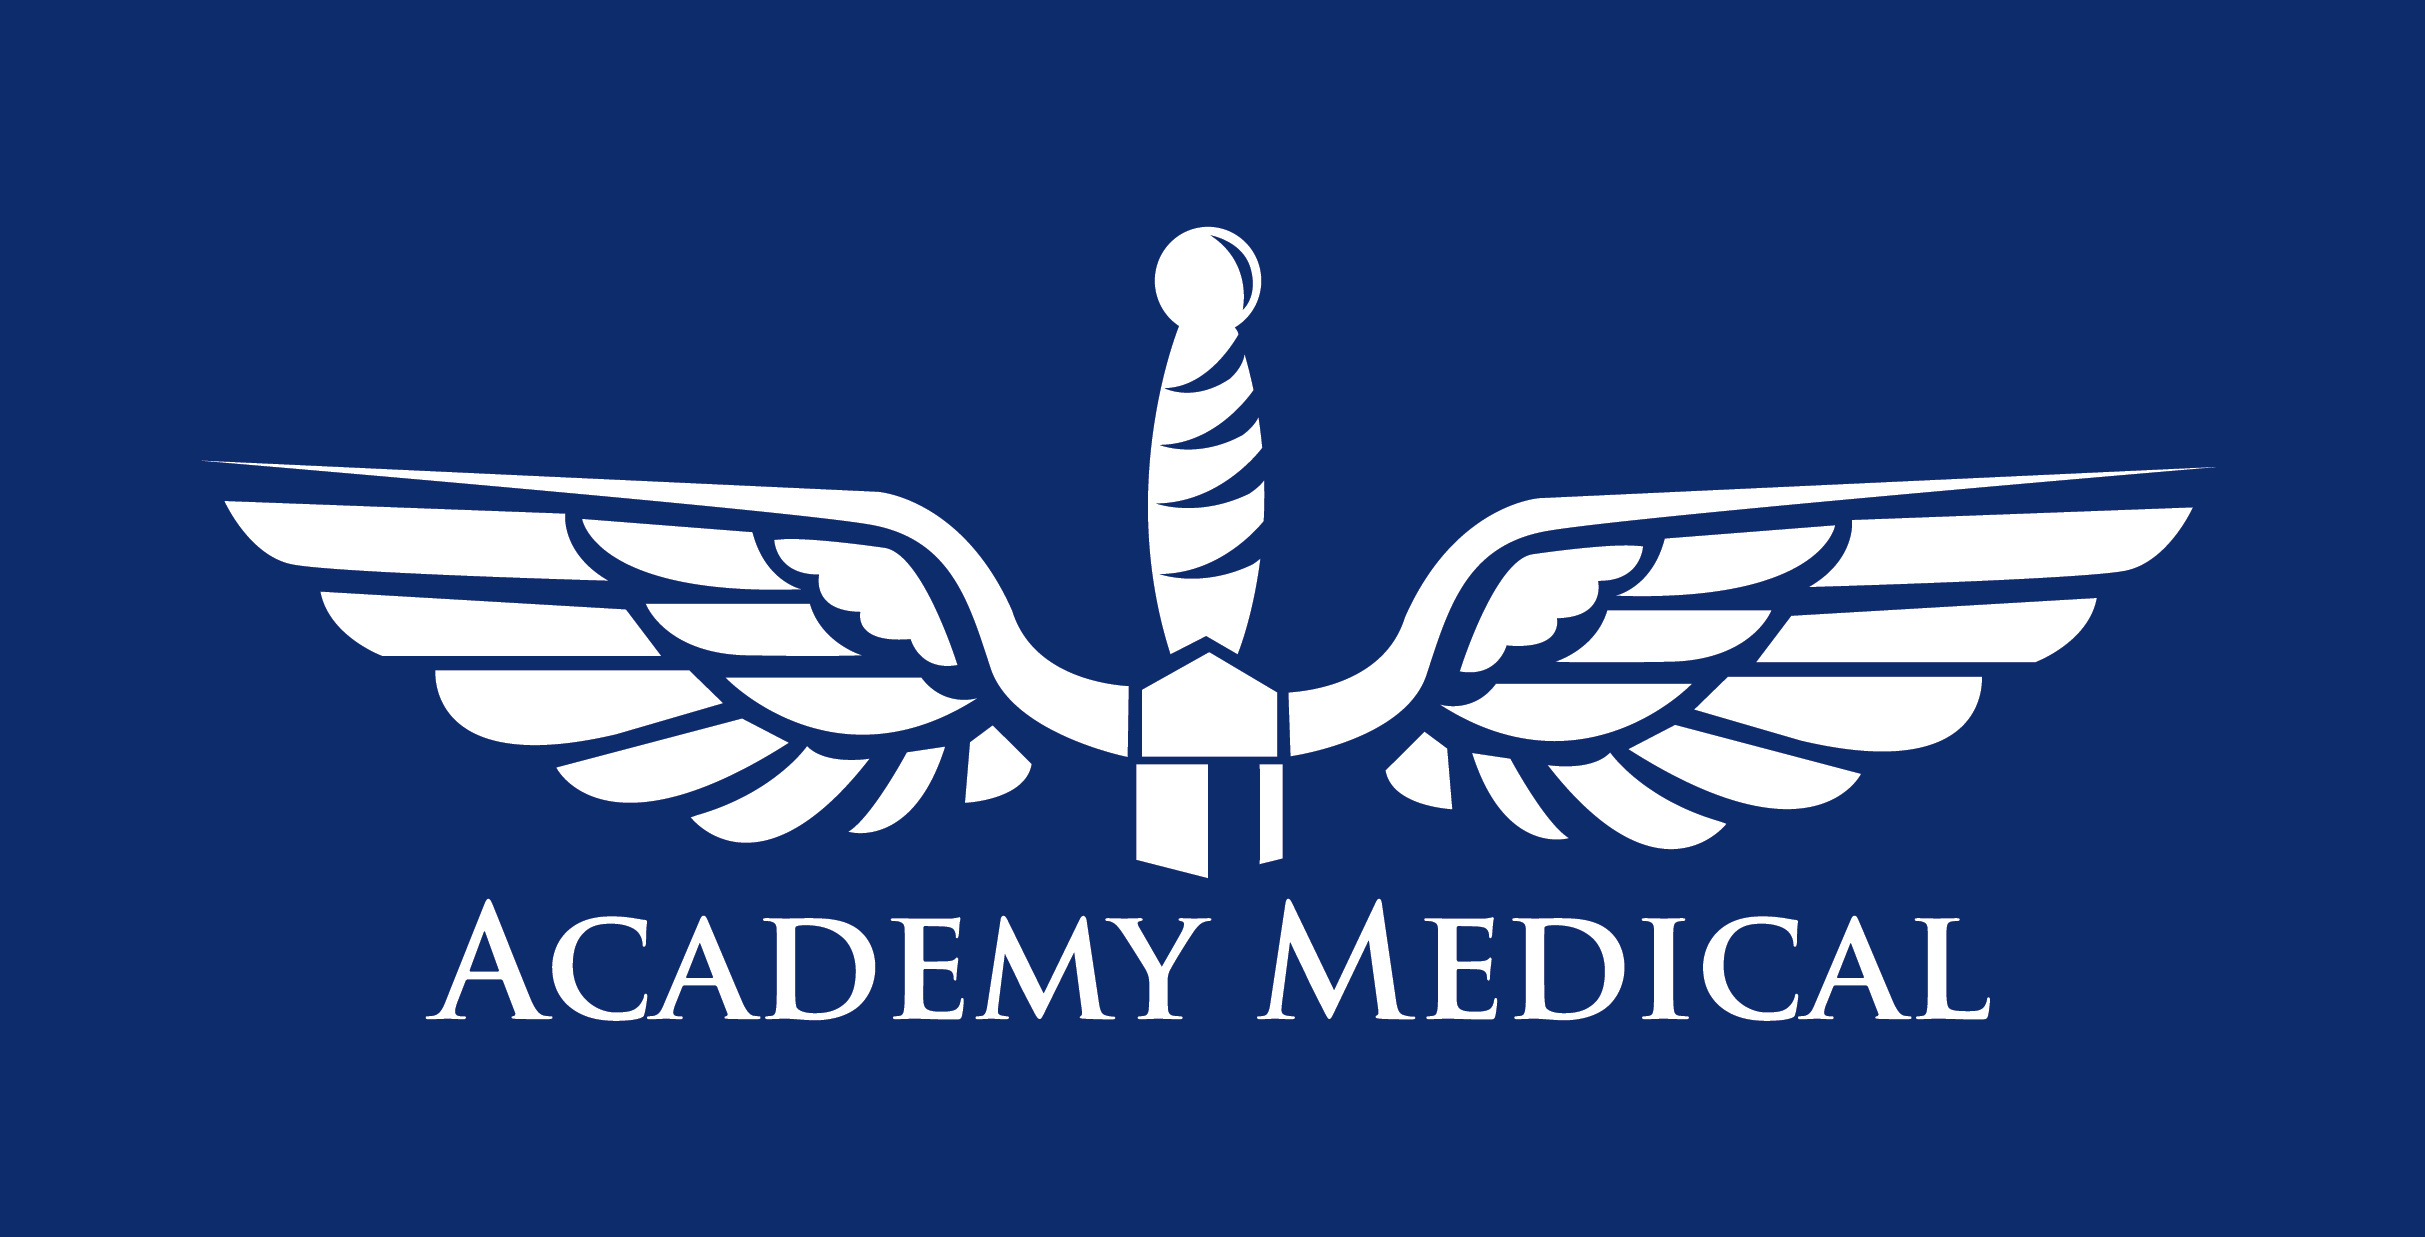 Academy Medical Has Announced a New Partnership with Cognivue